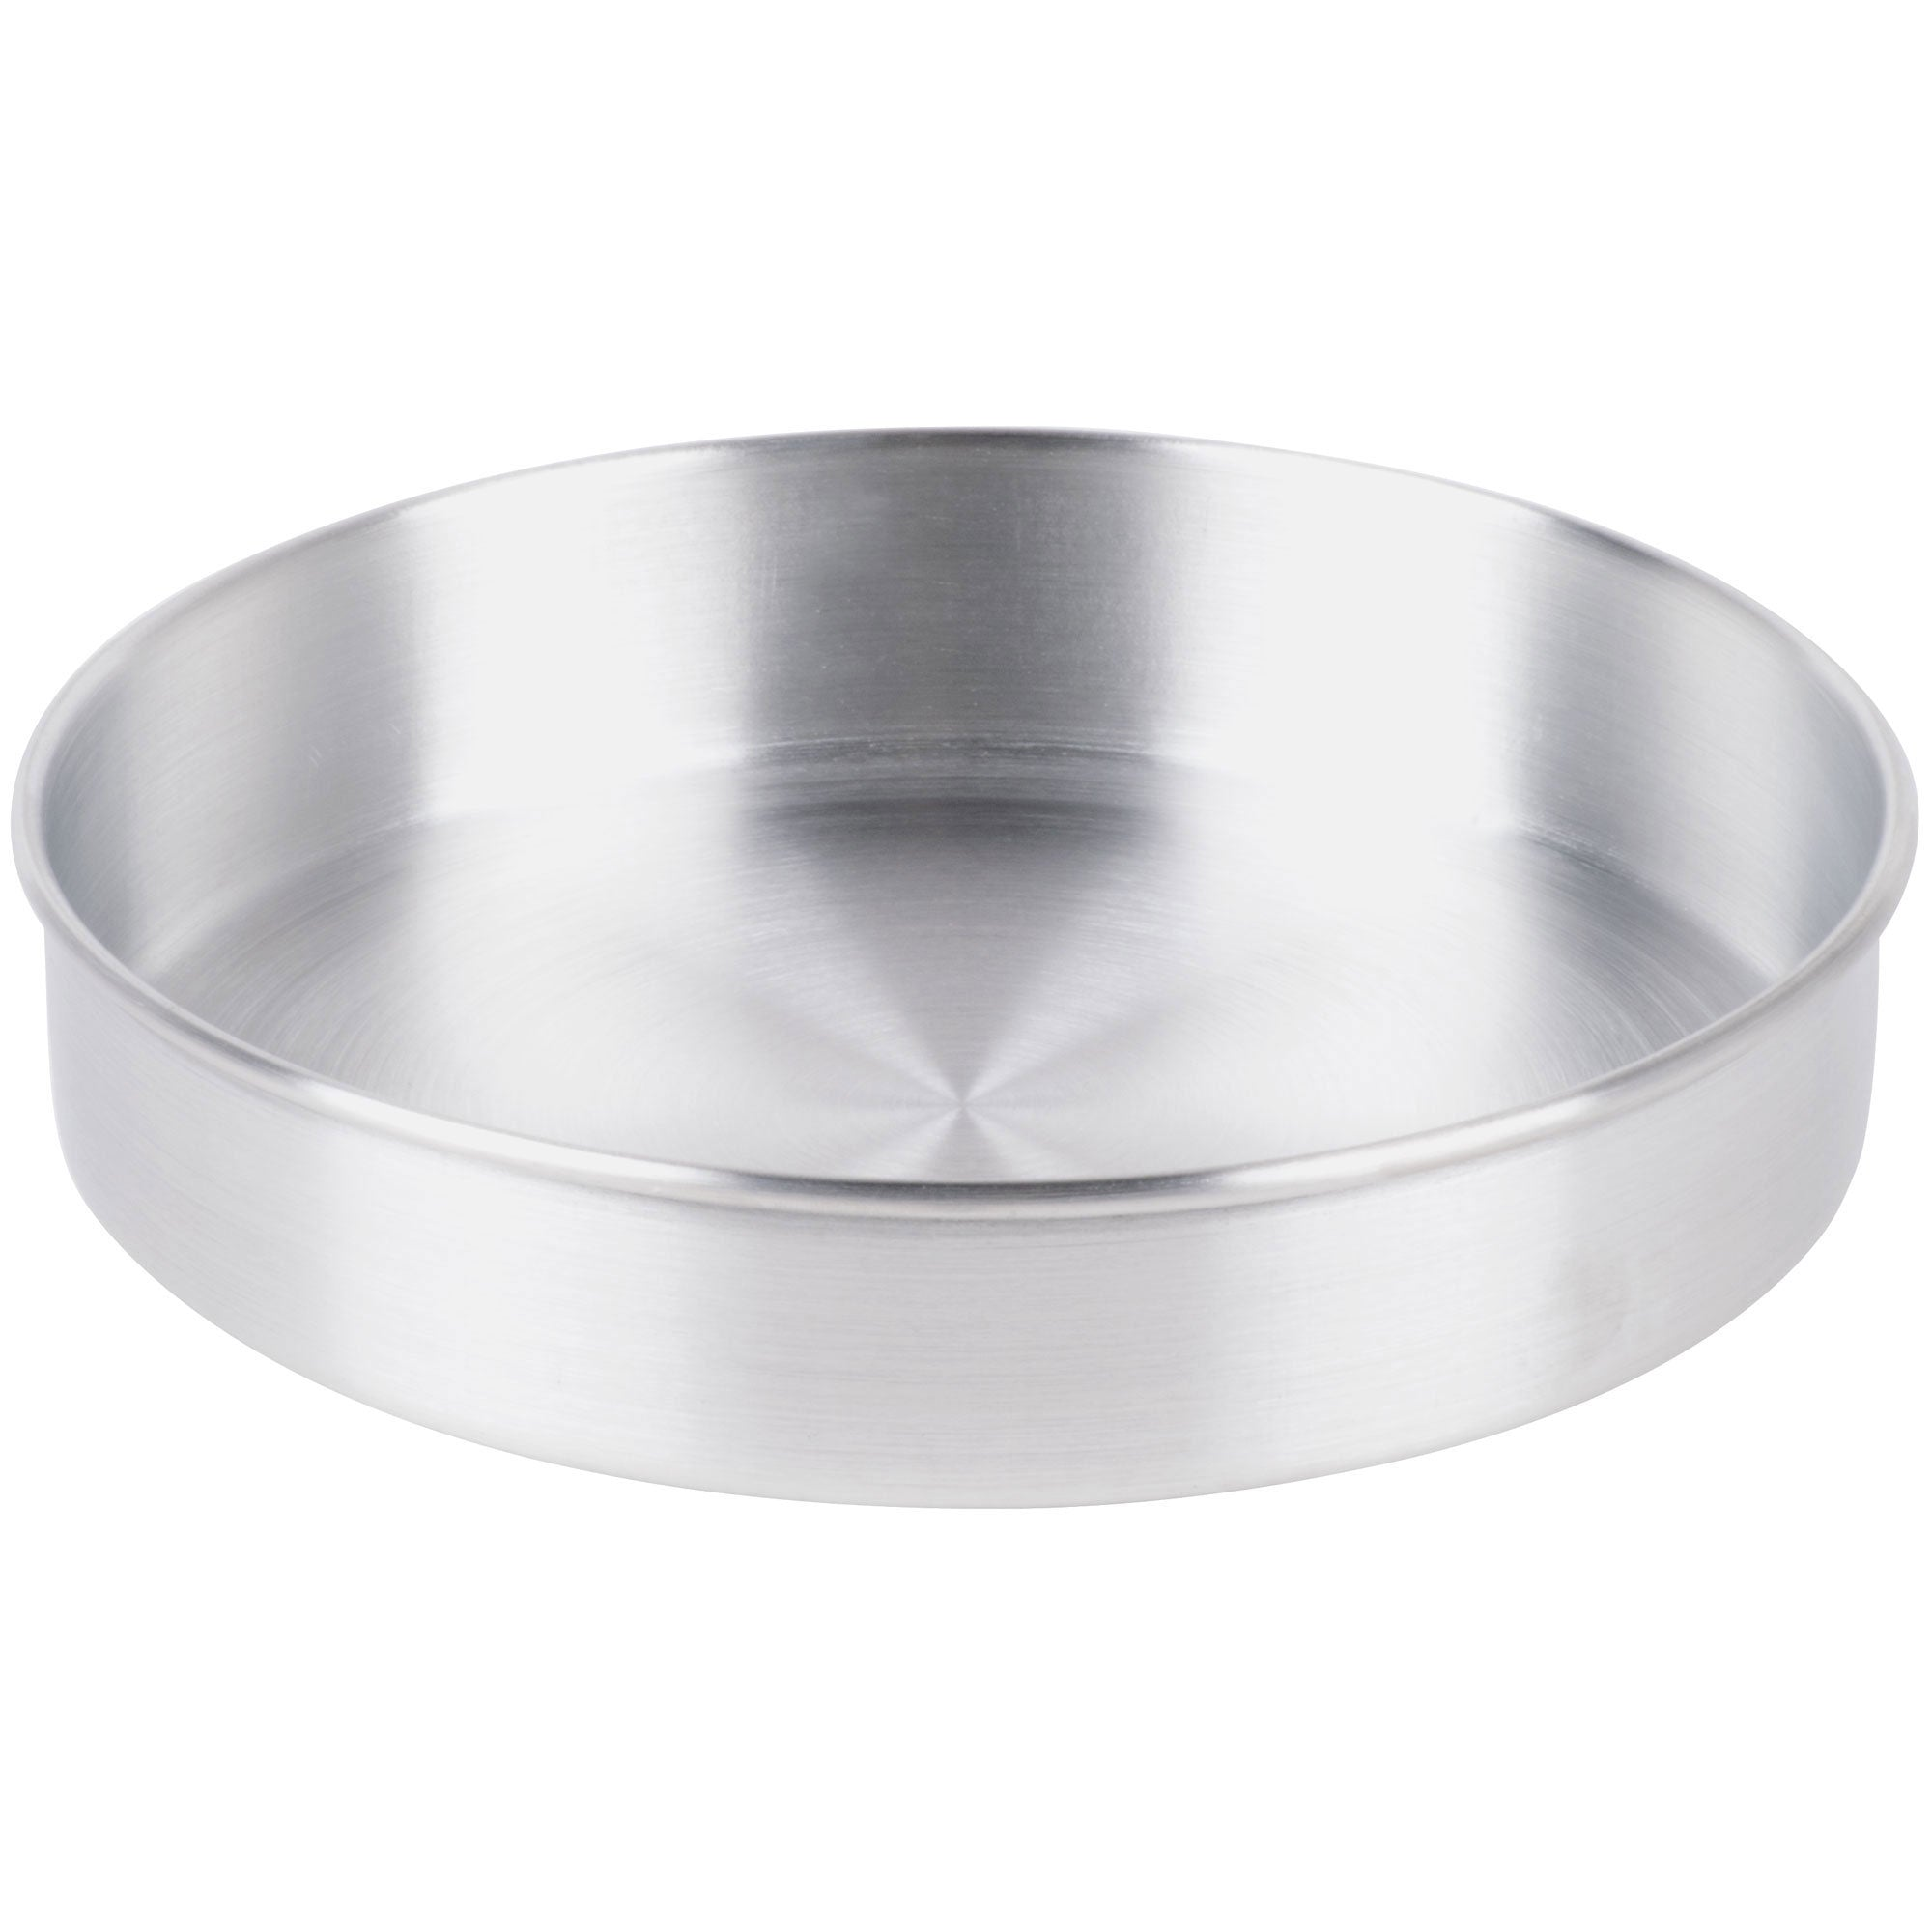 "12"" X 2"" Layer Cake Pan, Aluminum, 0.9Mm"